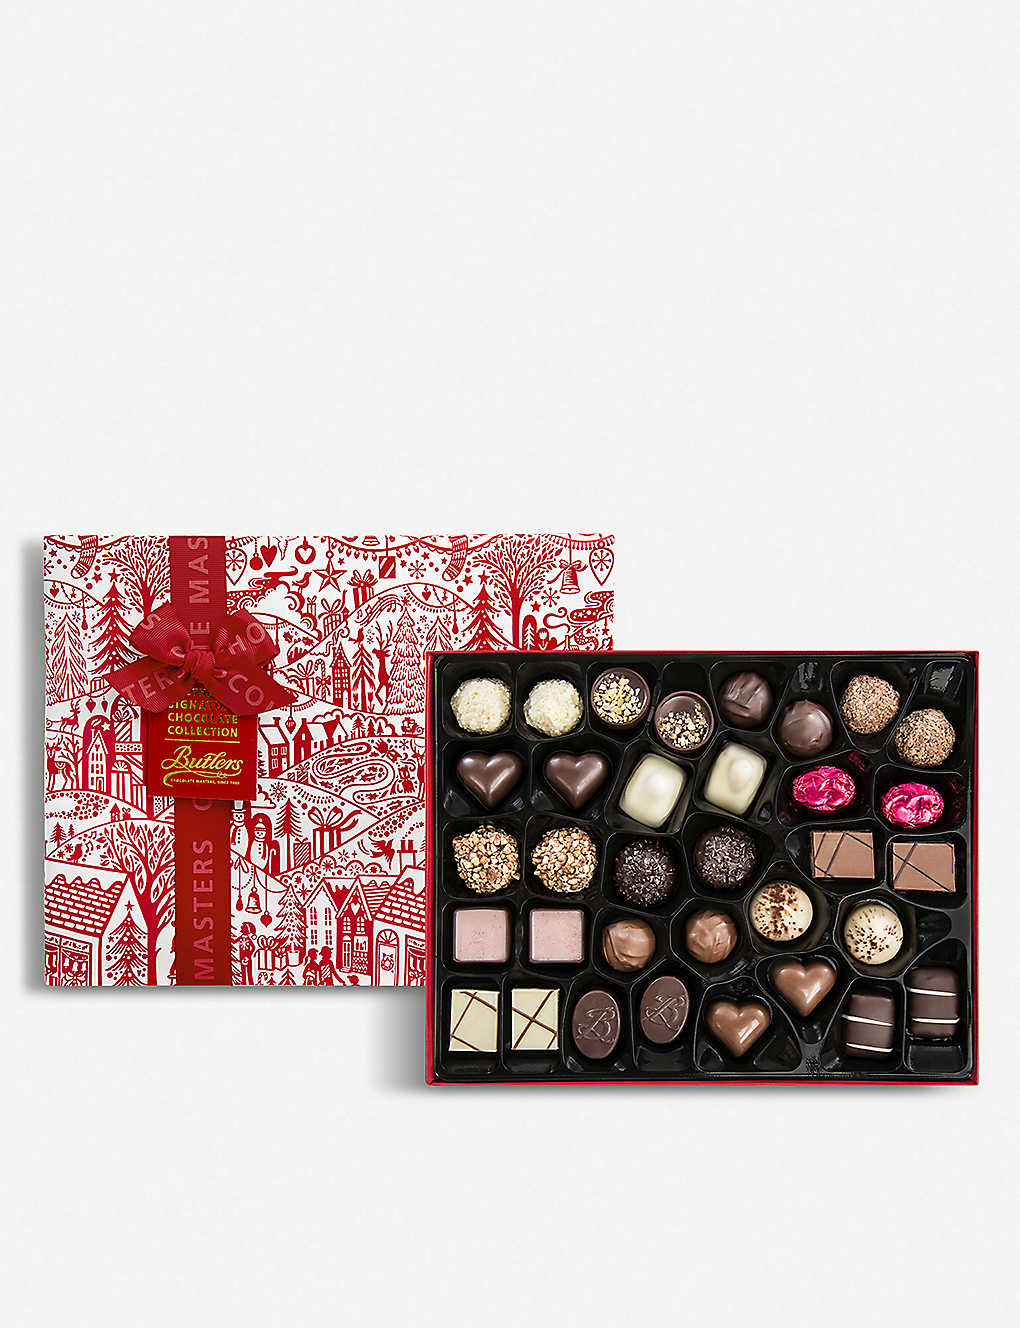 BUTLERS: Signature chocolate assortment 500g